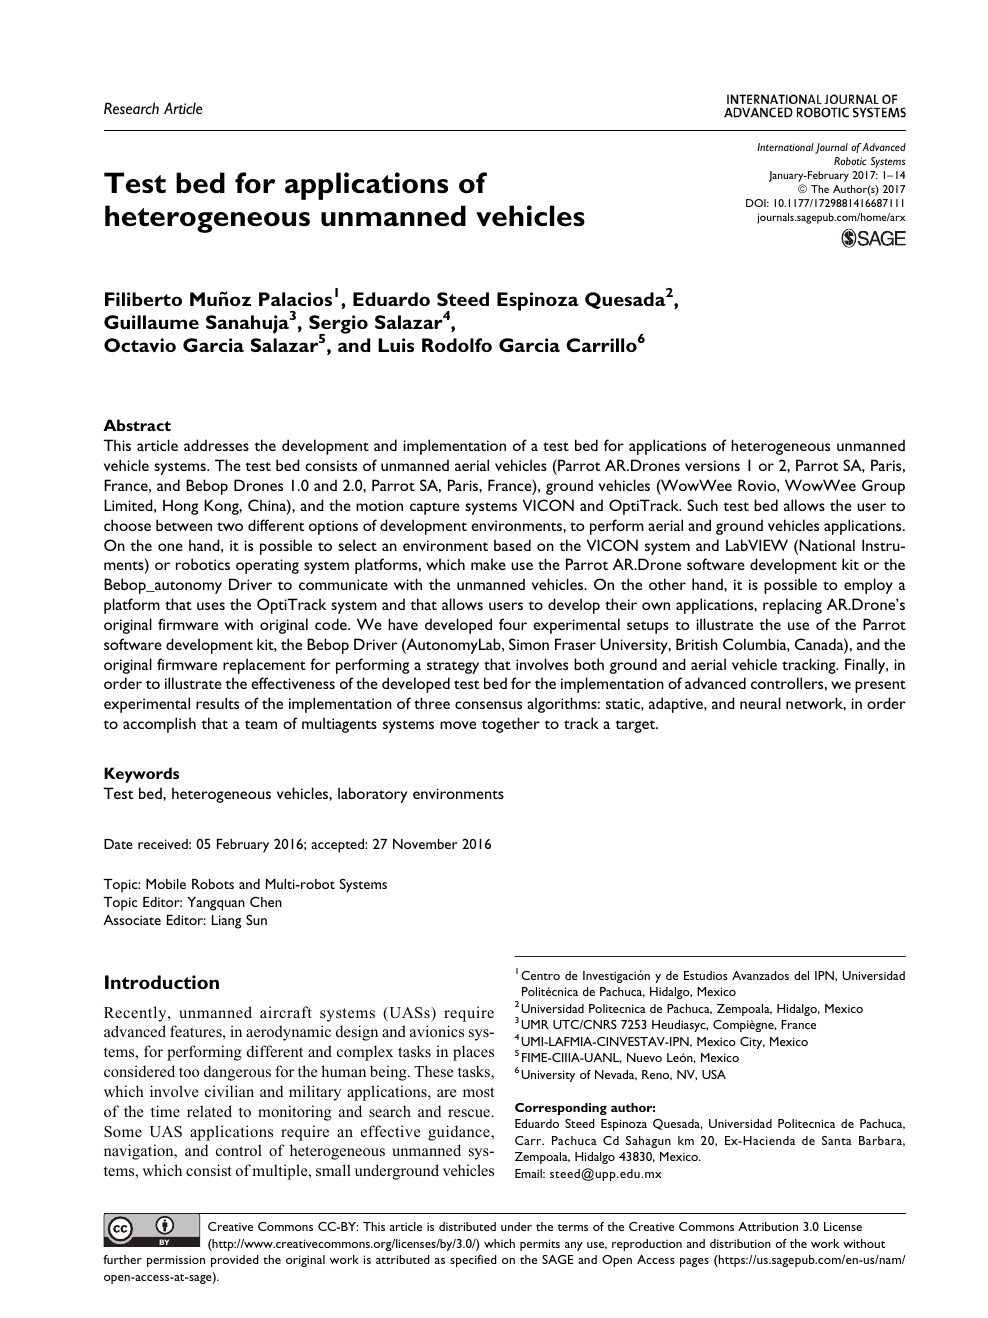 Test bed for applications of heterogeneous unmanned vehicles – topic